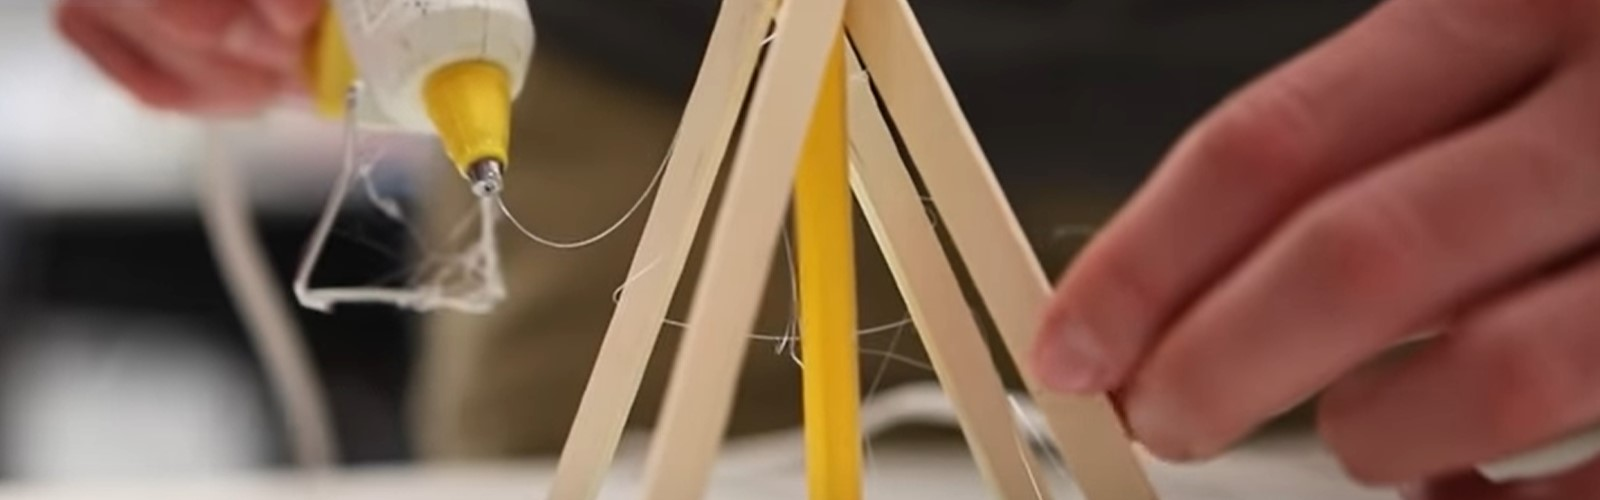 Popsicle sticks and a glue gun being used to build a teepee